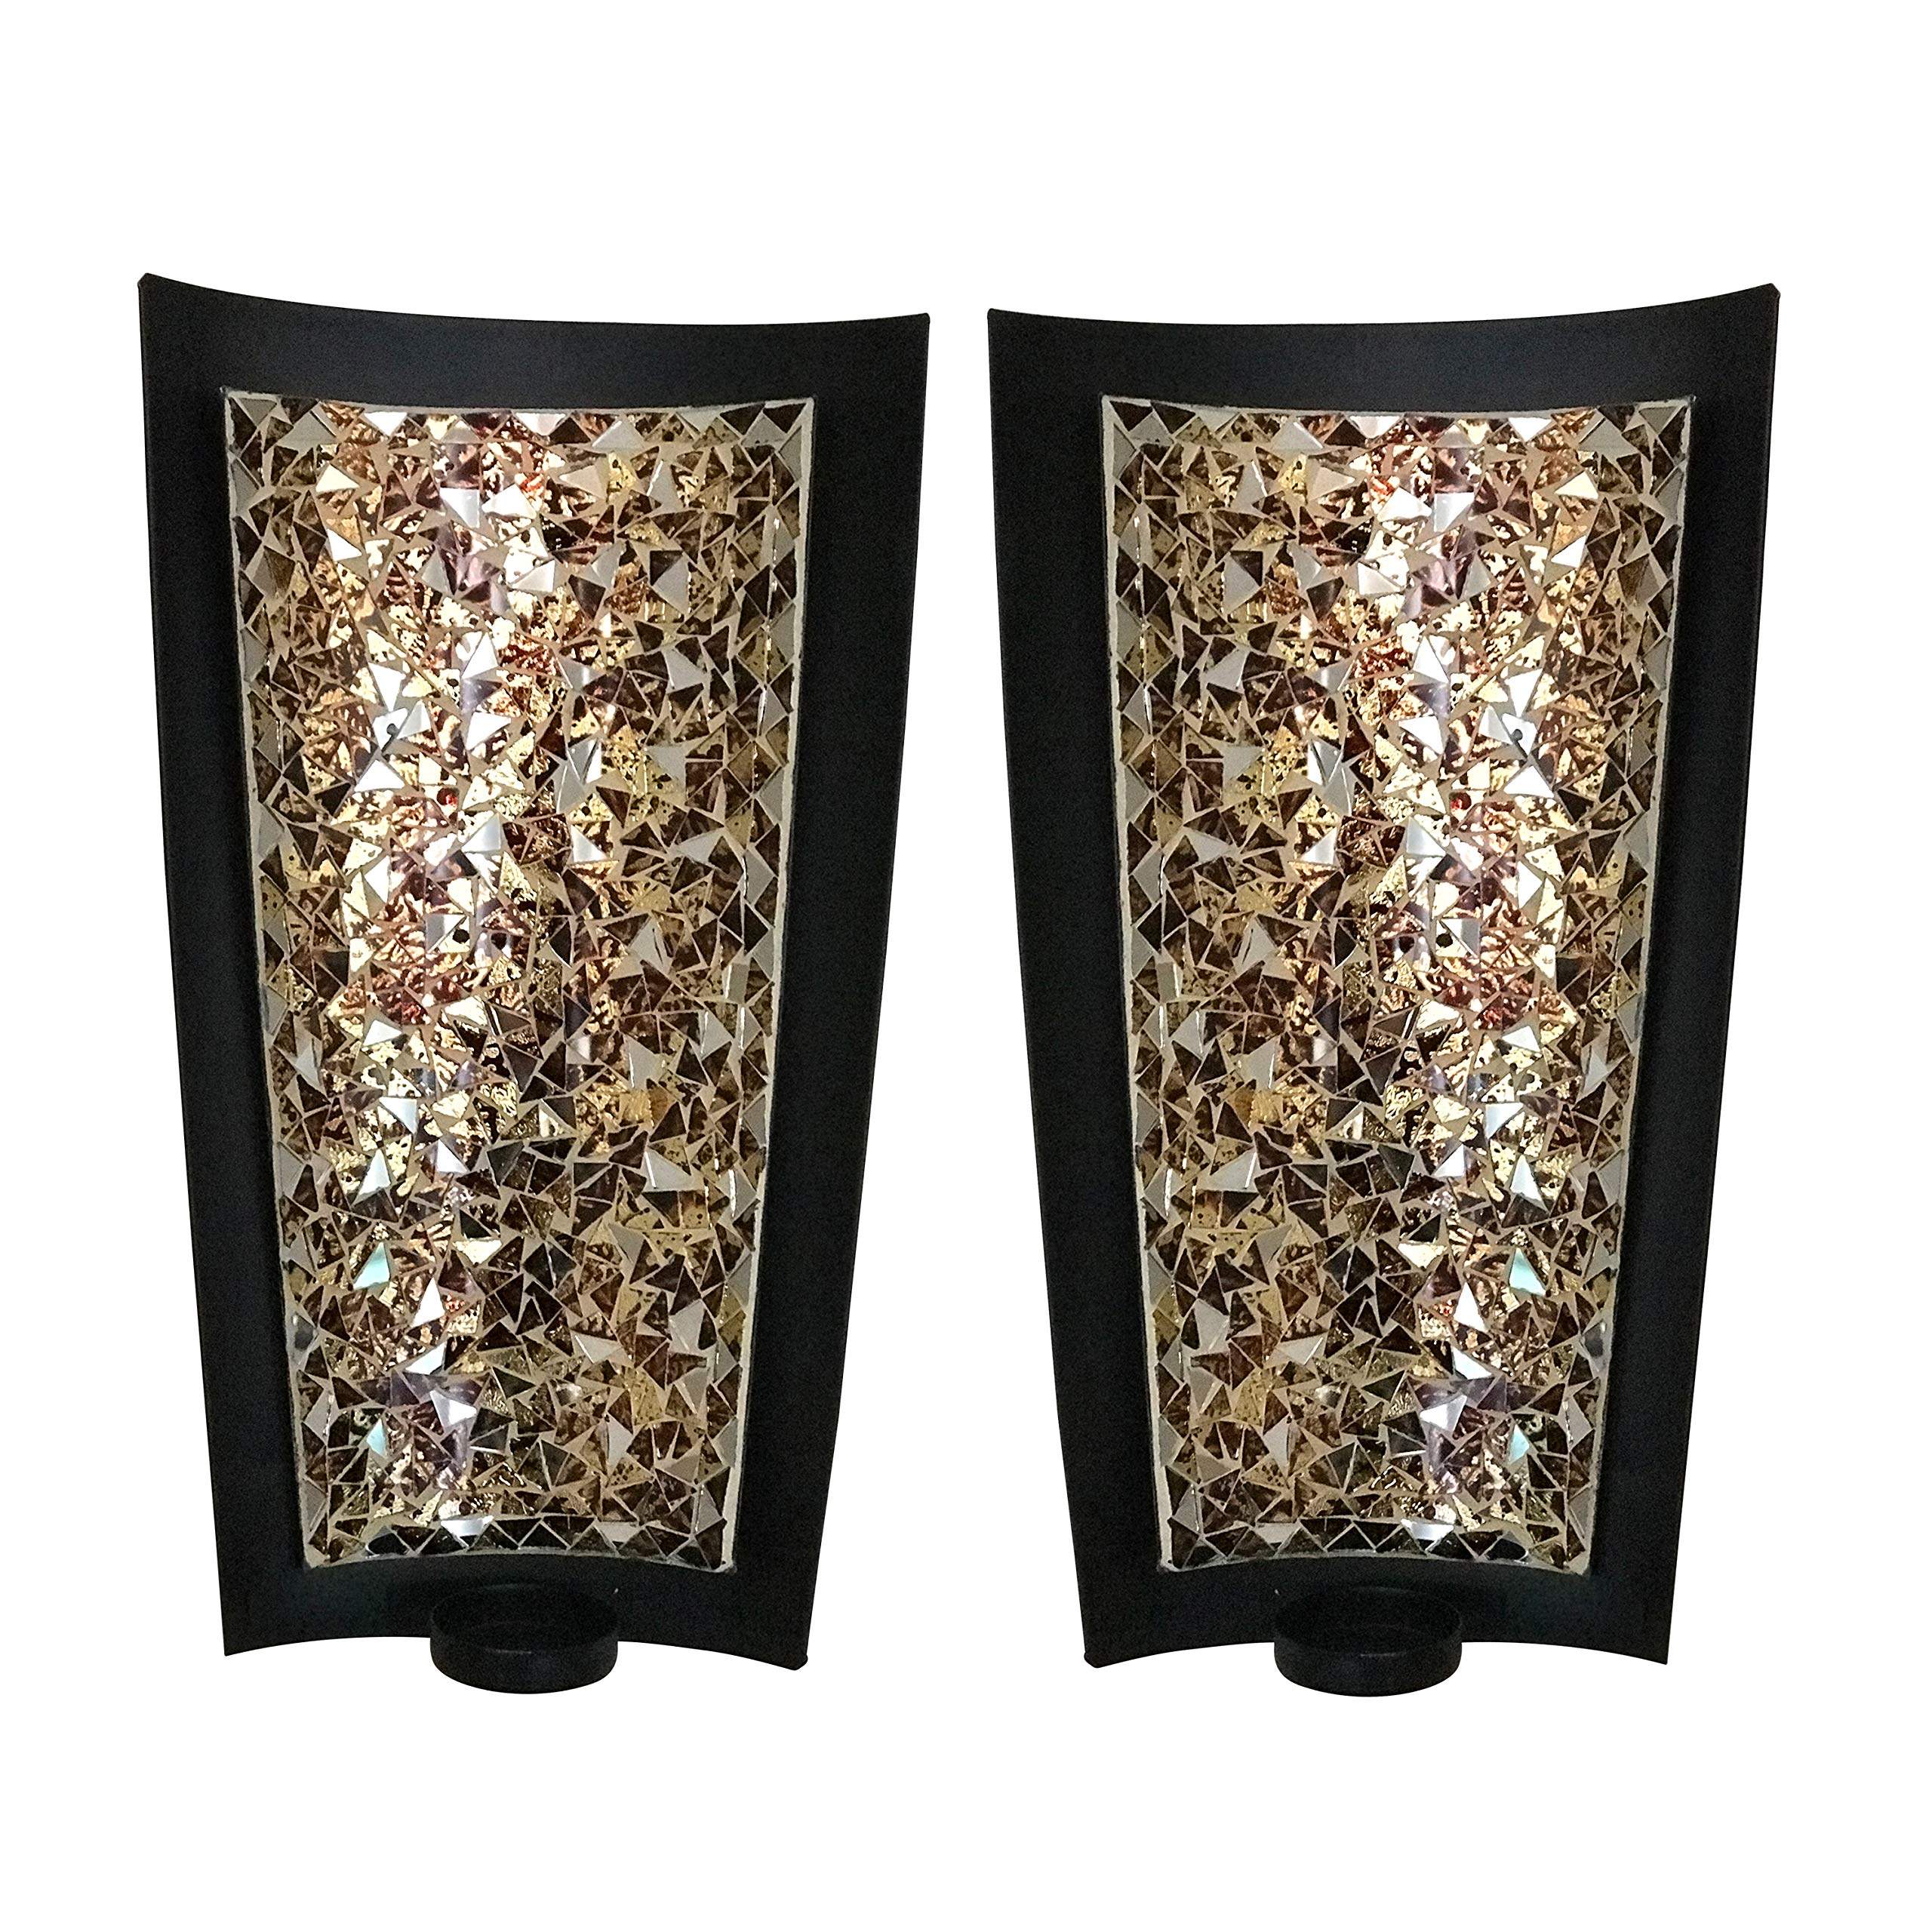 DecorShore Mosaic Wall Sconces Tealight Candle Holders - Abstract Metal Wall Art Candle Sconces Pair (Medium - 12 inch)